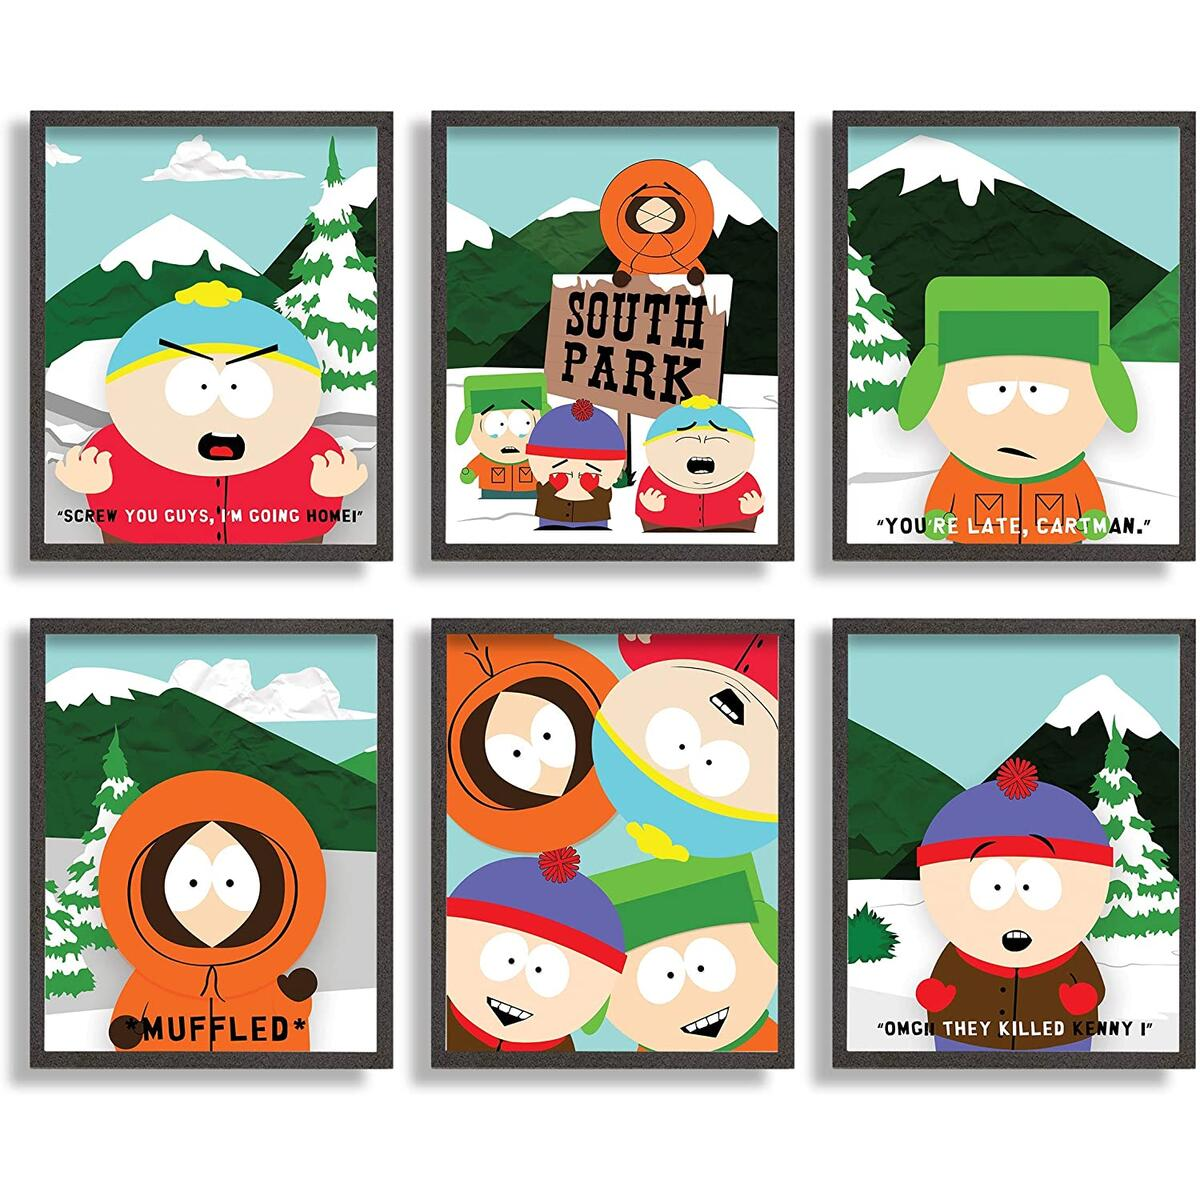 print n art south park poster 8x10 inches unframed set of 6 adult swim south park south park wall art south park wall decor south park picture